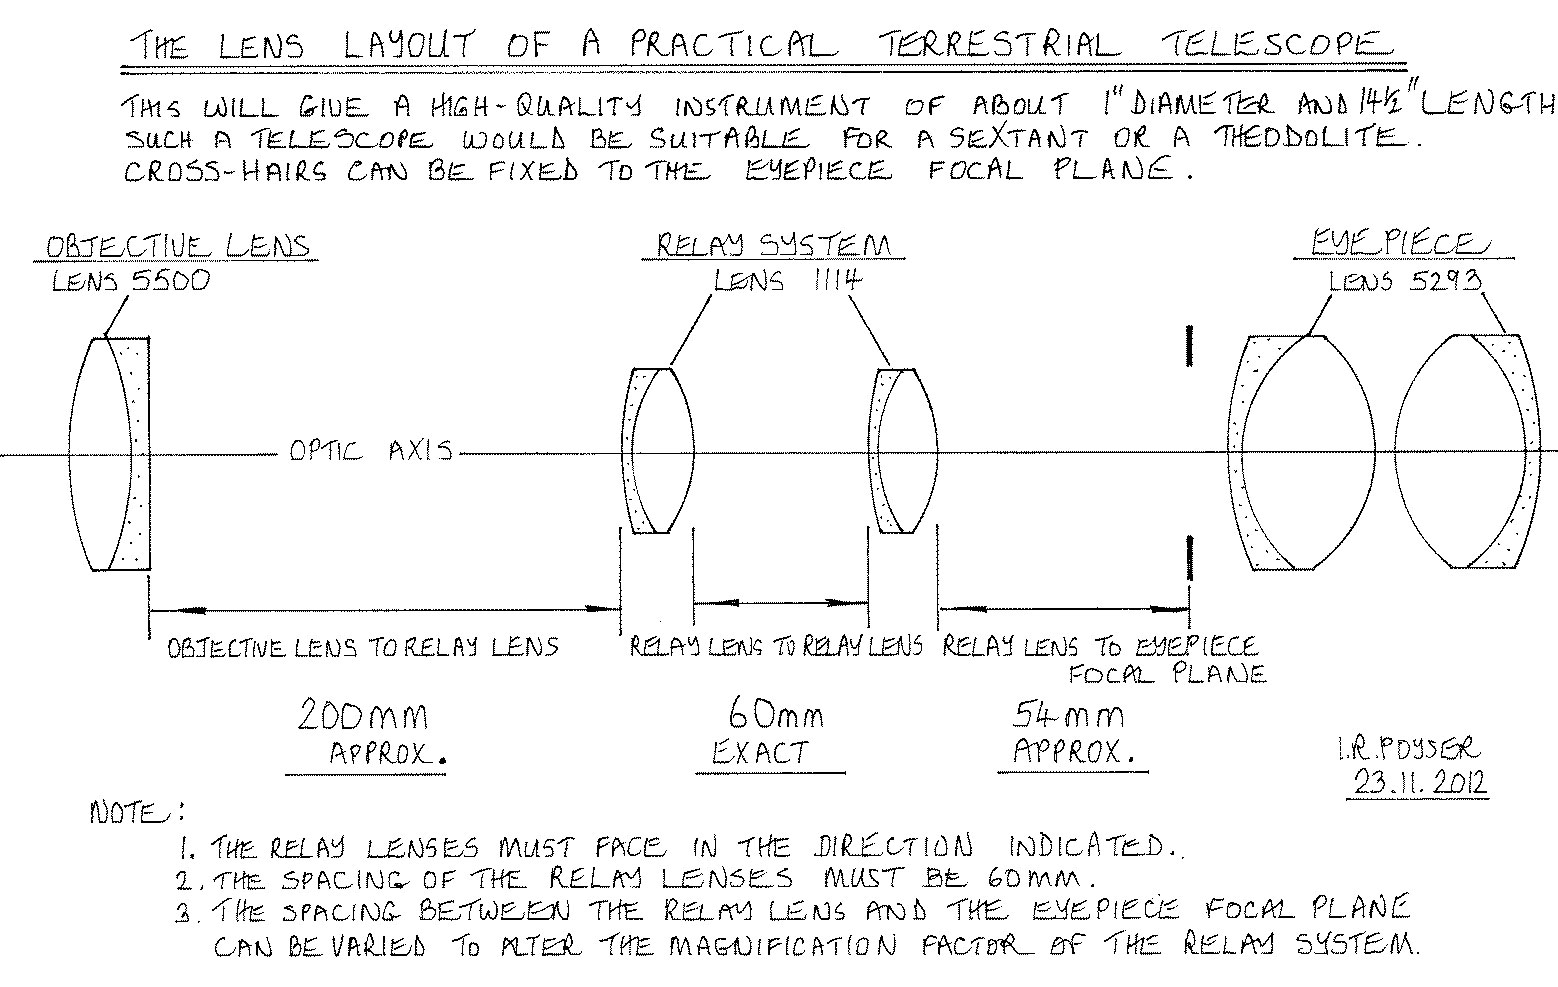 how to build a telescope ir poyser telescope makers Relay Power Diagram diagram 8 the lens layout of a practical terrestrial telescope